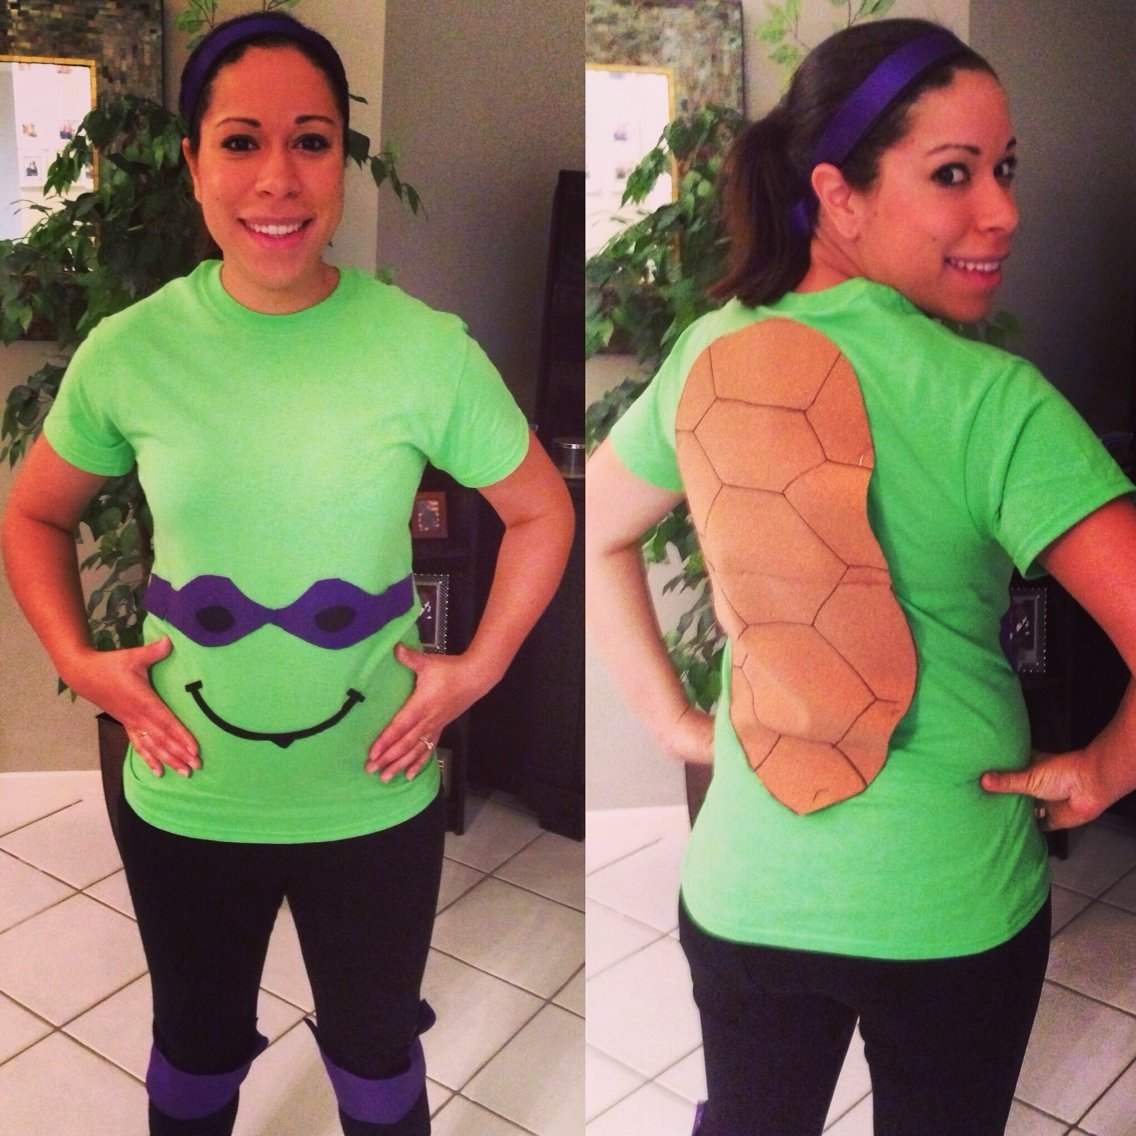 10 unique teenage mutant ninja turtles costume ideas 10 unique teenage mutant ninja turtles costume ideas ninja turtle pregnancy costume easy diy my parties solutioingenieria Image collections